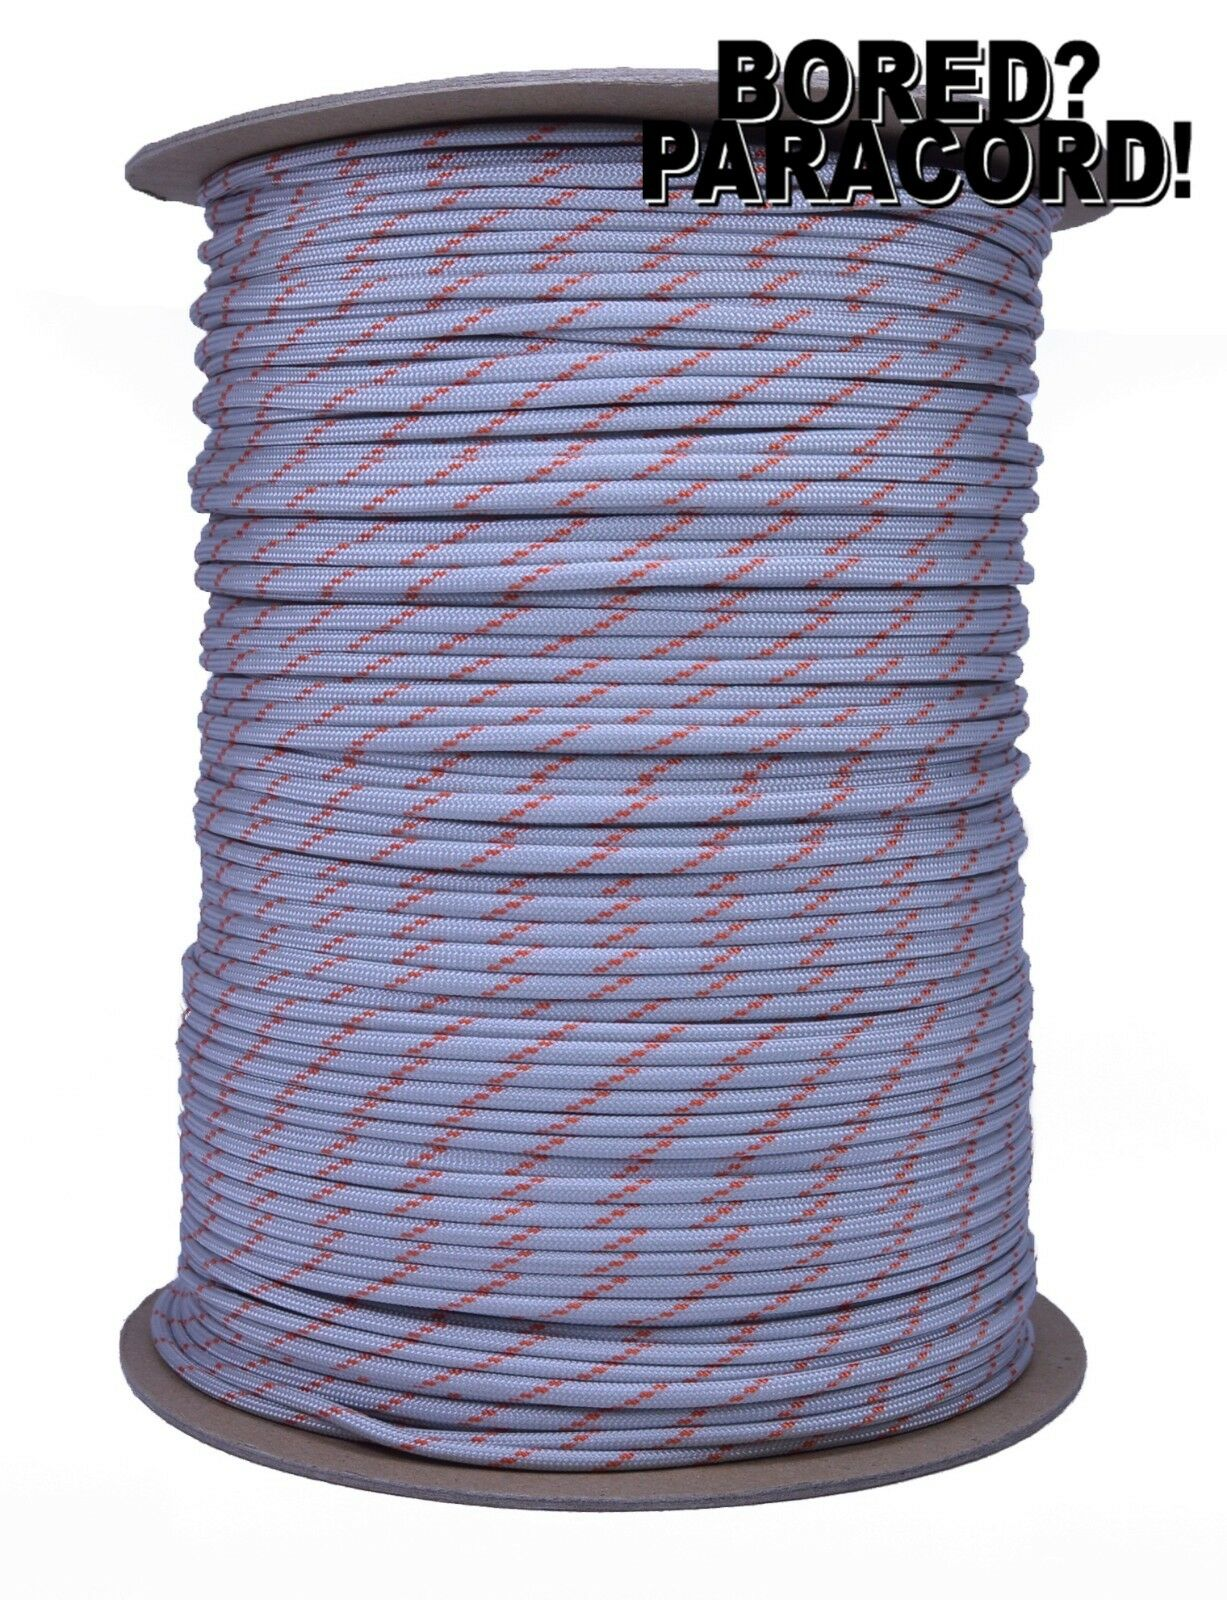 Lithium  550 Paracord Rope 7 strand Parachute Cord  1000 Foot Spool